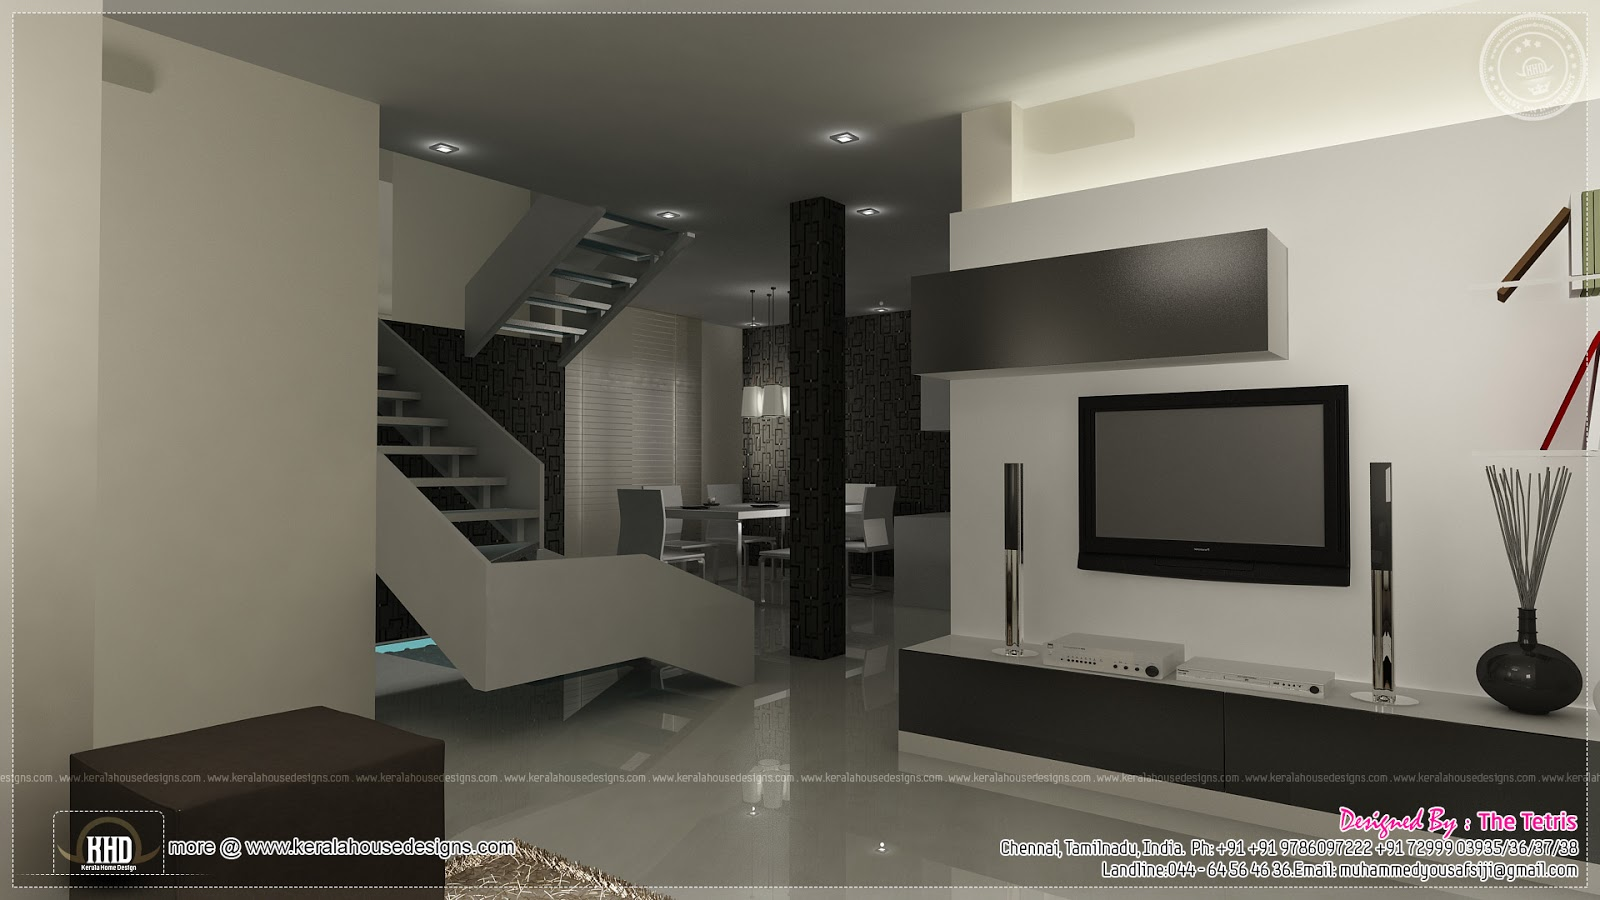 Interior design renderings by Tetris Architects, Chennai  Kerala home